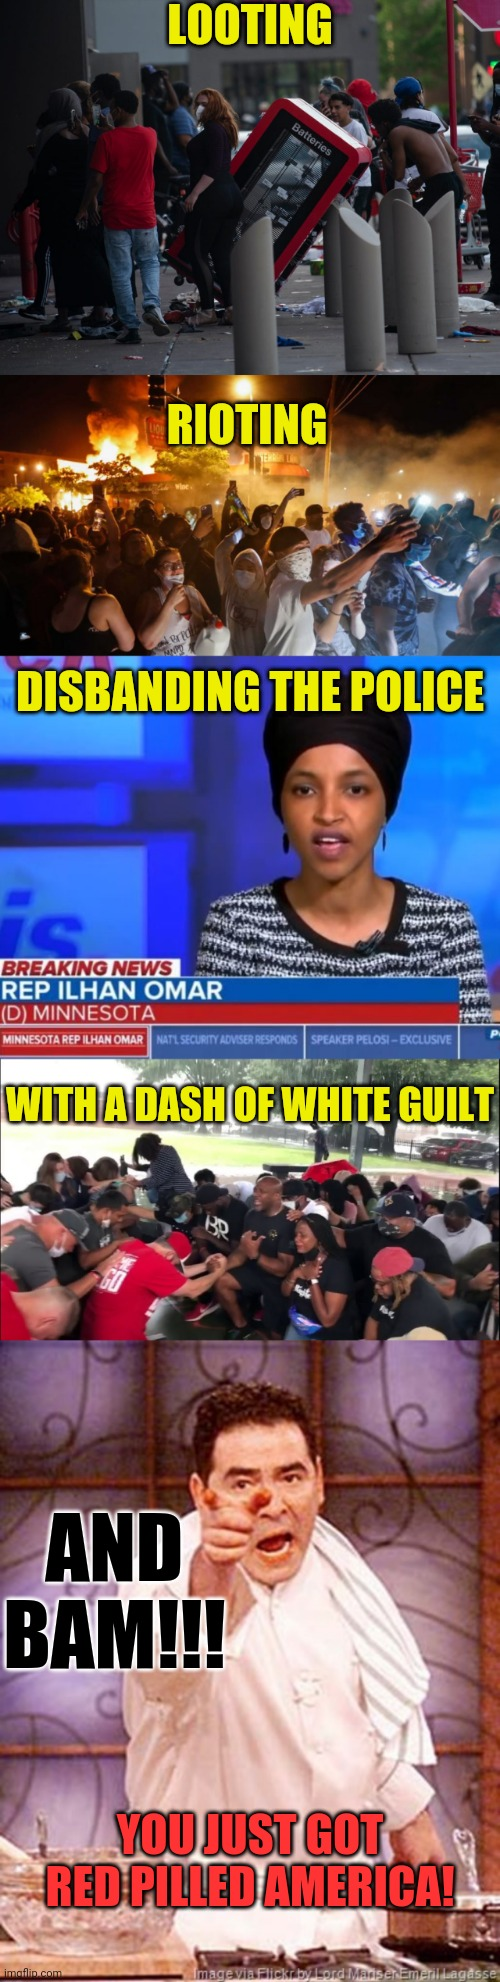 The Insane Left Are Red Pilling America |  LOOTING; RIOTING; DISBANDING THE POLICE; WITH A DASH OF WHITE GUILT; AND BAM!!! YOU JUST GOT RED PILLED AMERICA! | image tagged in red pill,riots,looting,police,ilhan omar,white guilt | made w/ Imgflip meme maker